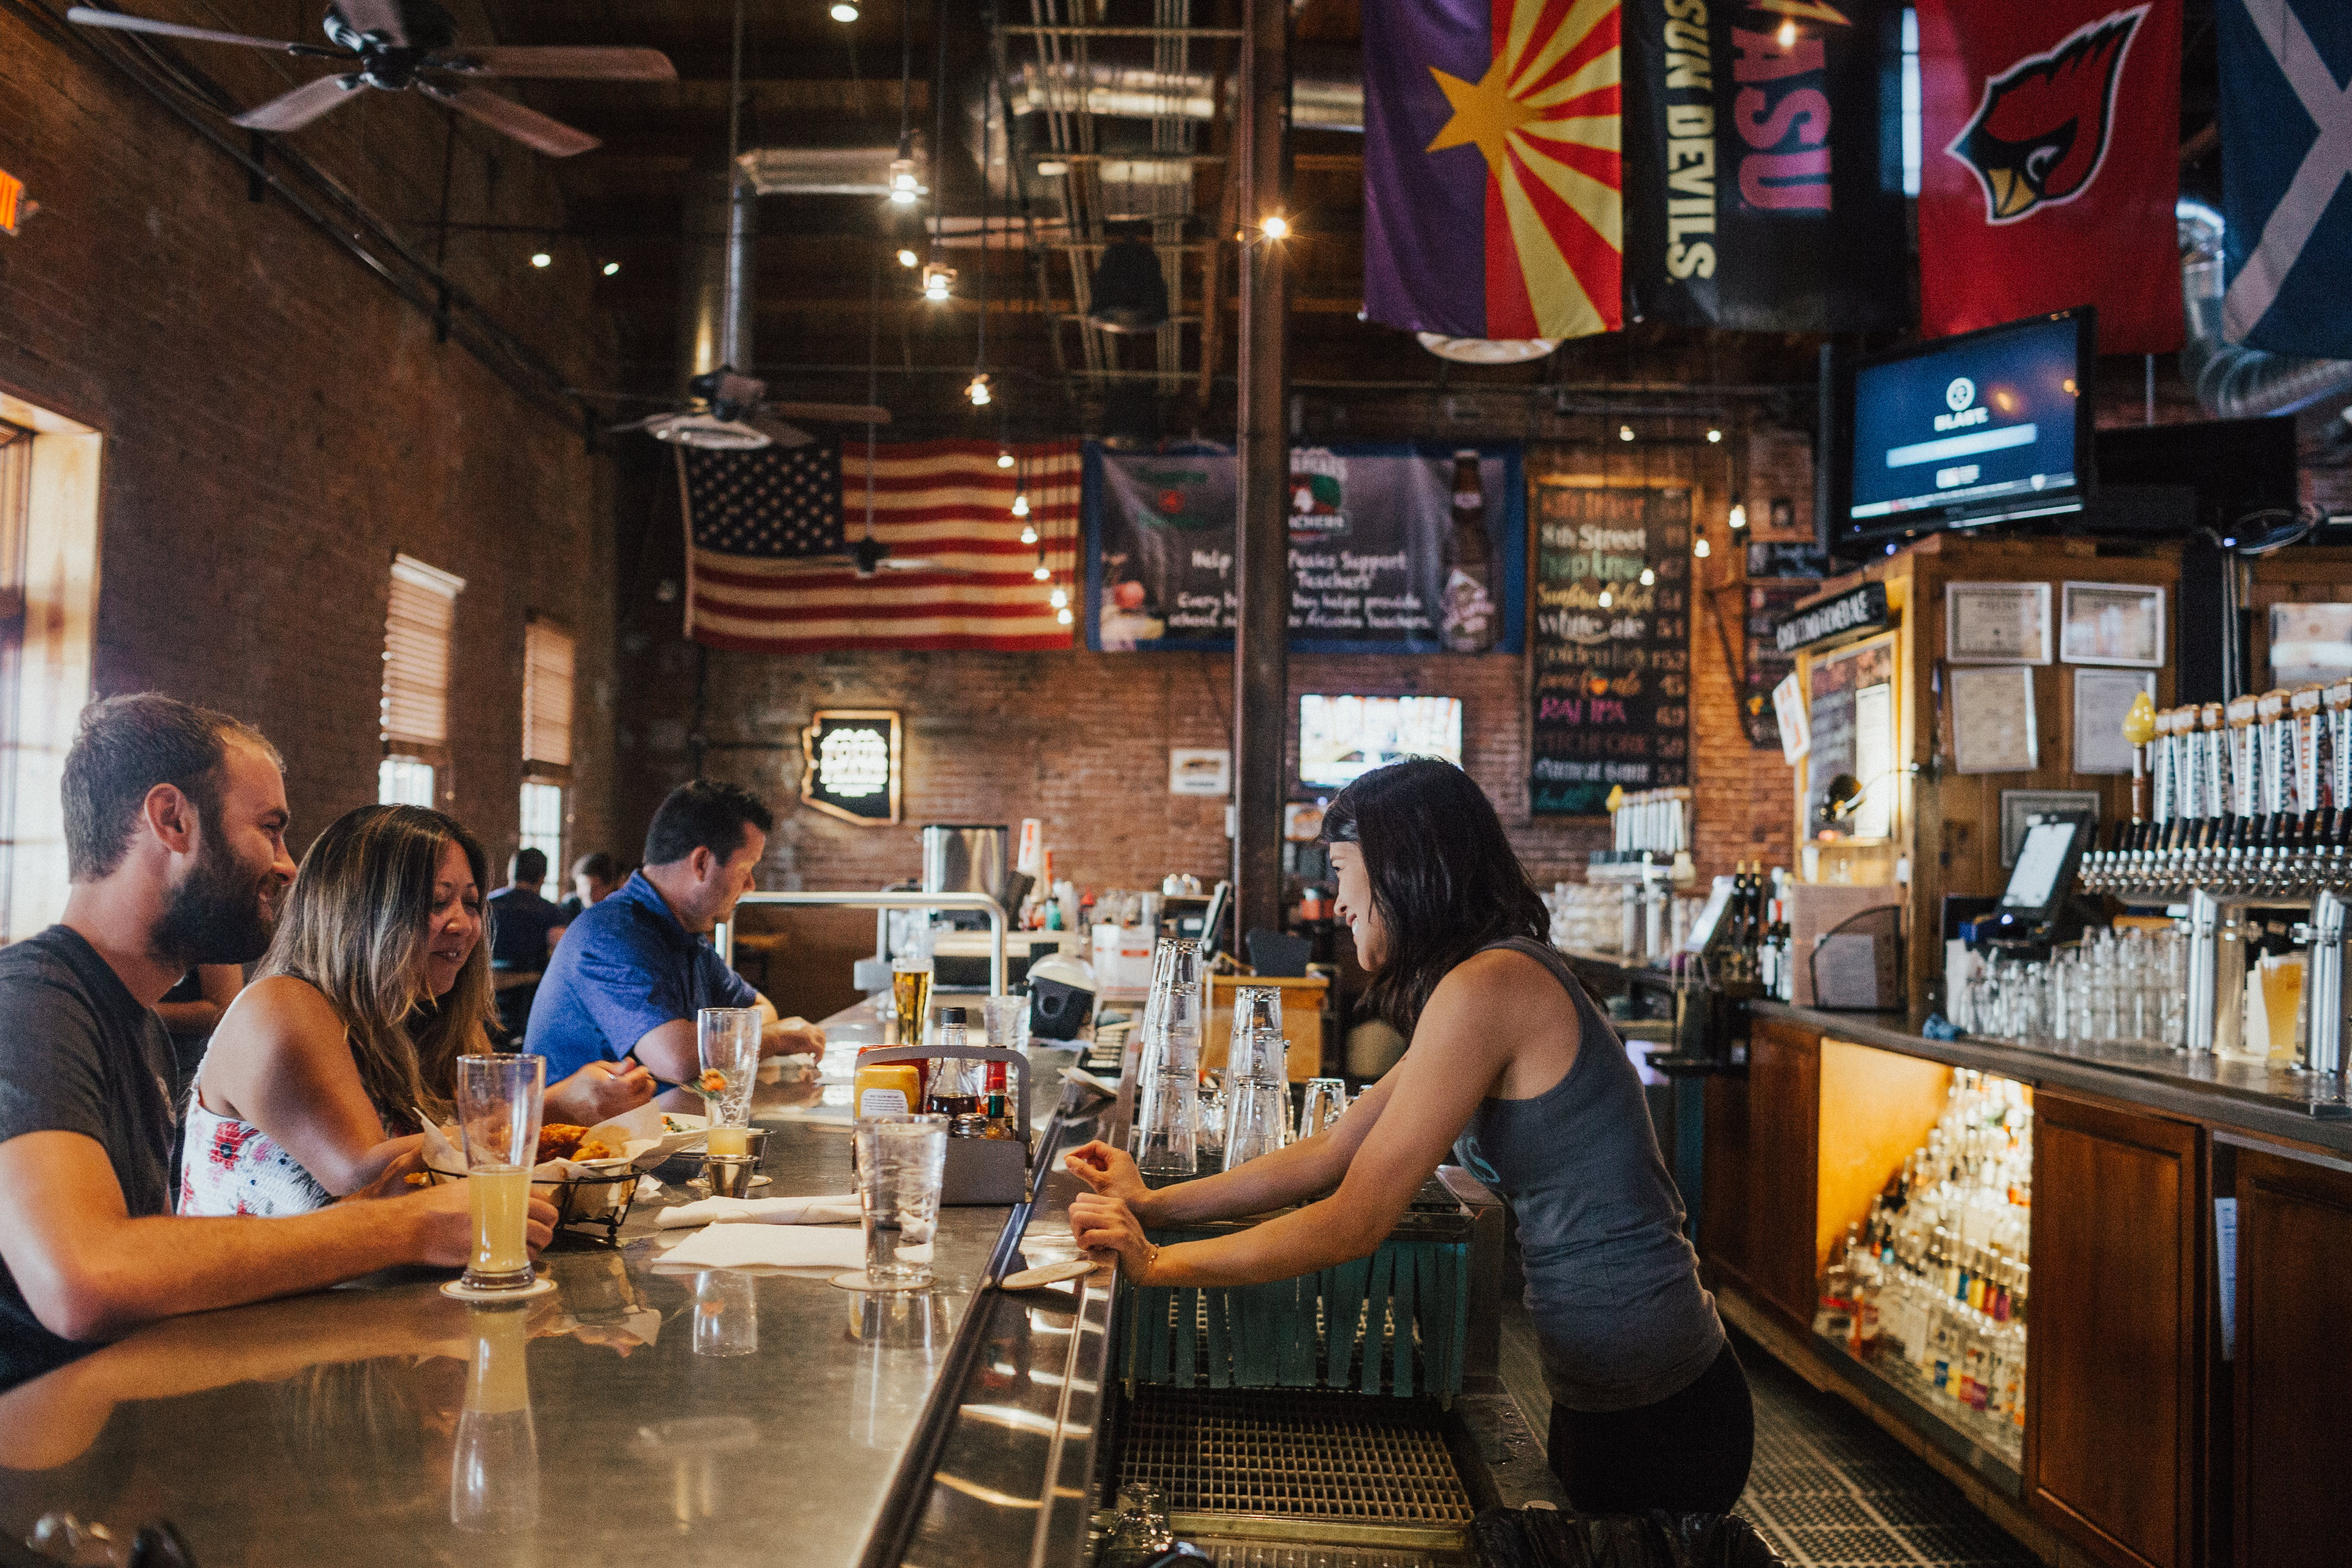 Woman Wearing Gray Tank Top in Bar Counter Attending Costumers